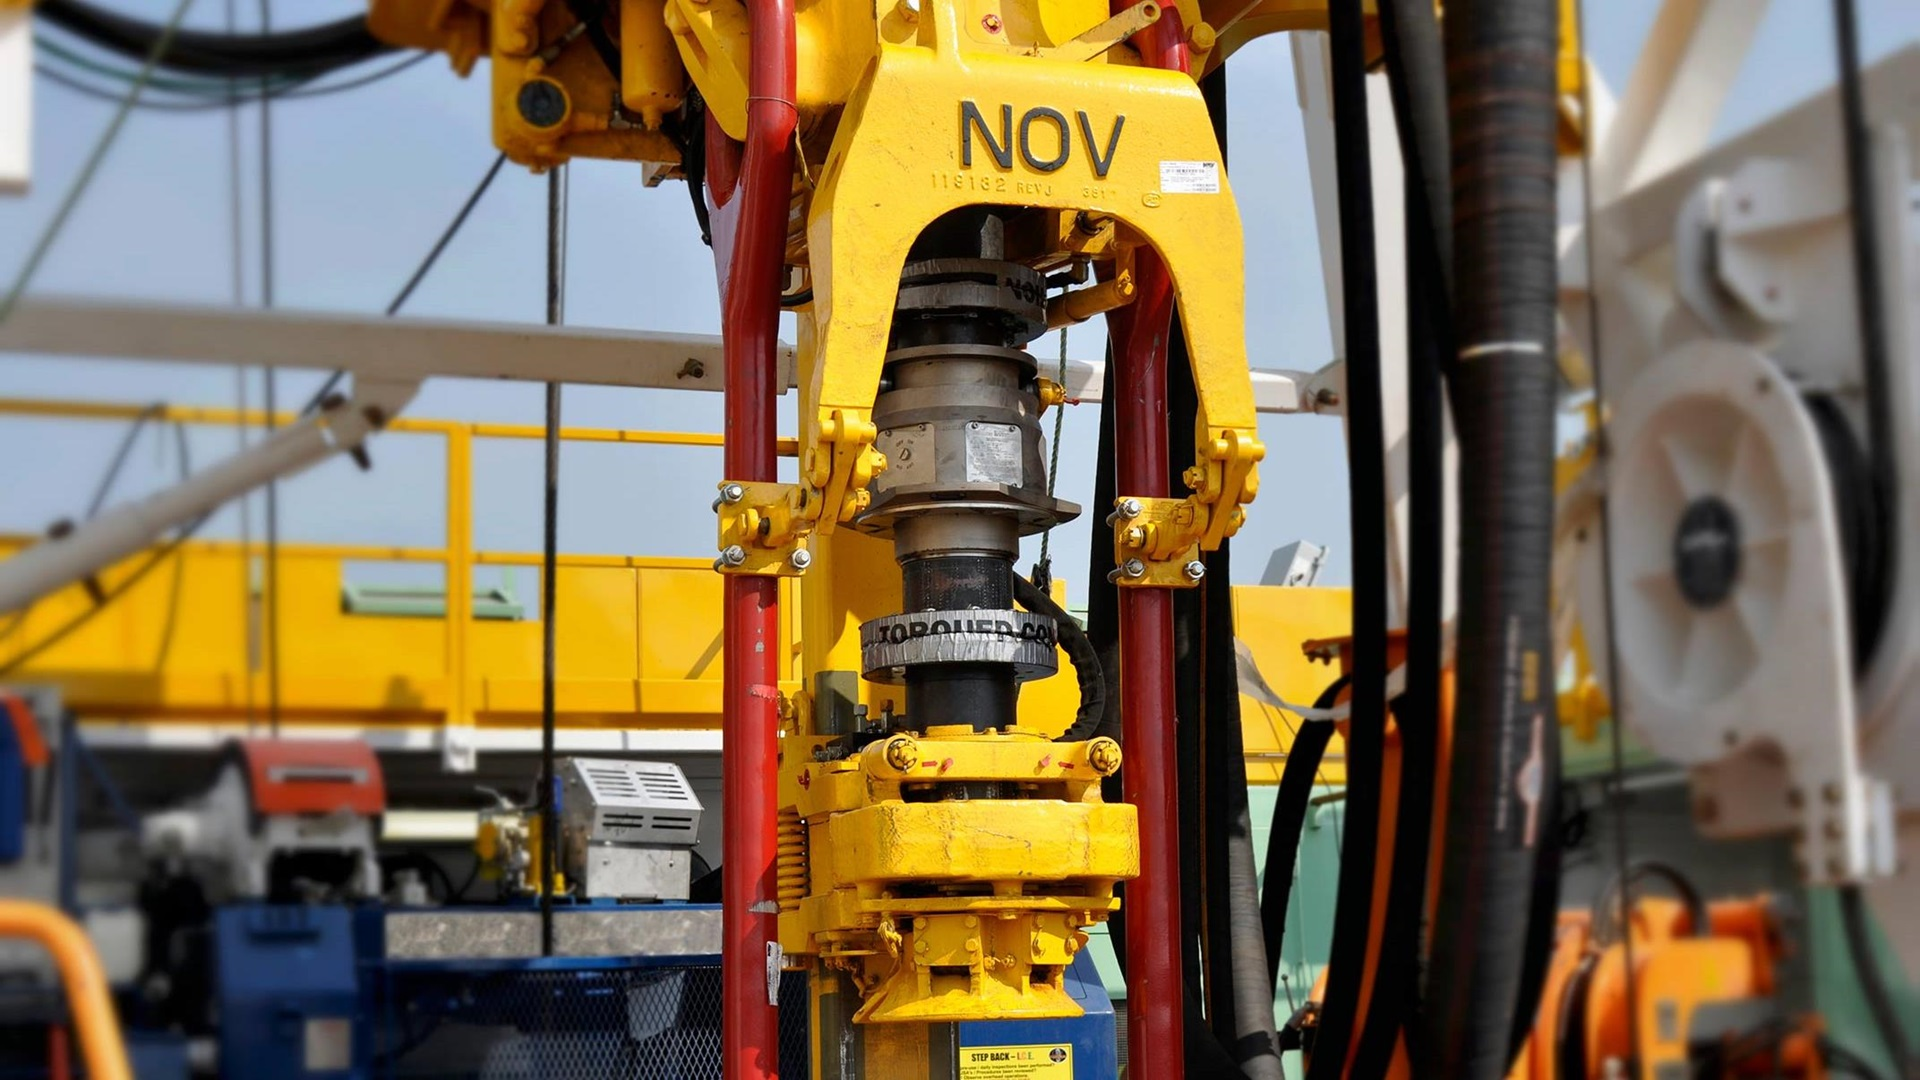 A StringSense Integrated Drill String Measurement System attached to a rig onsite